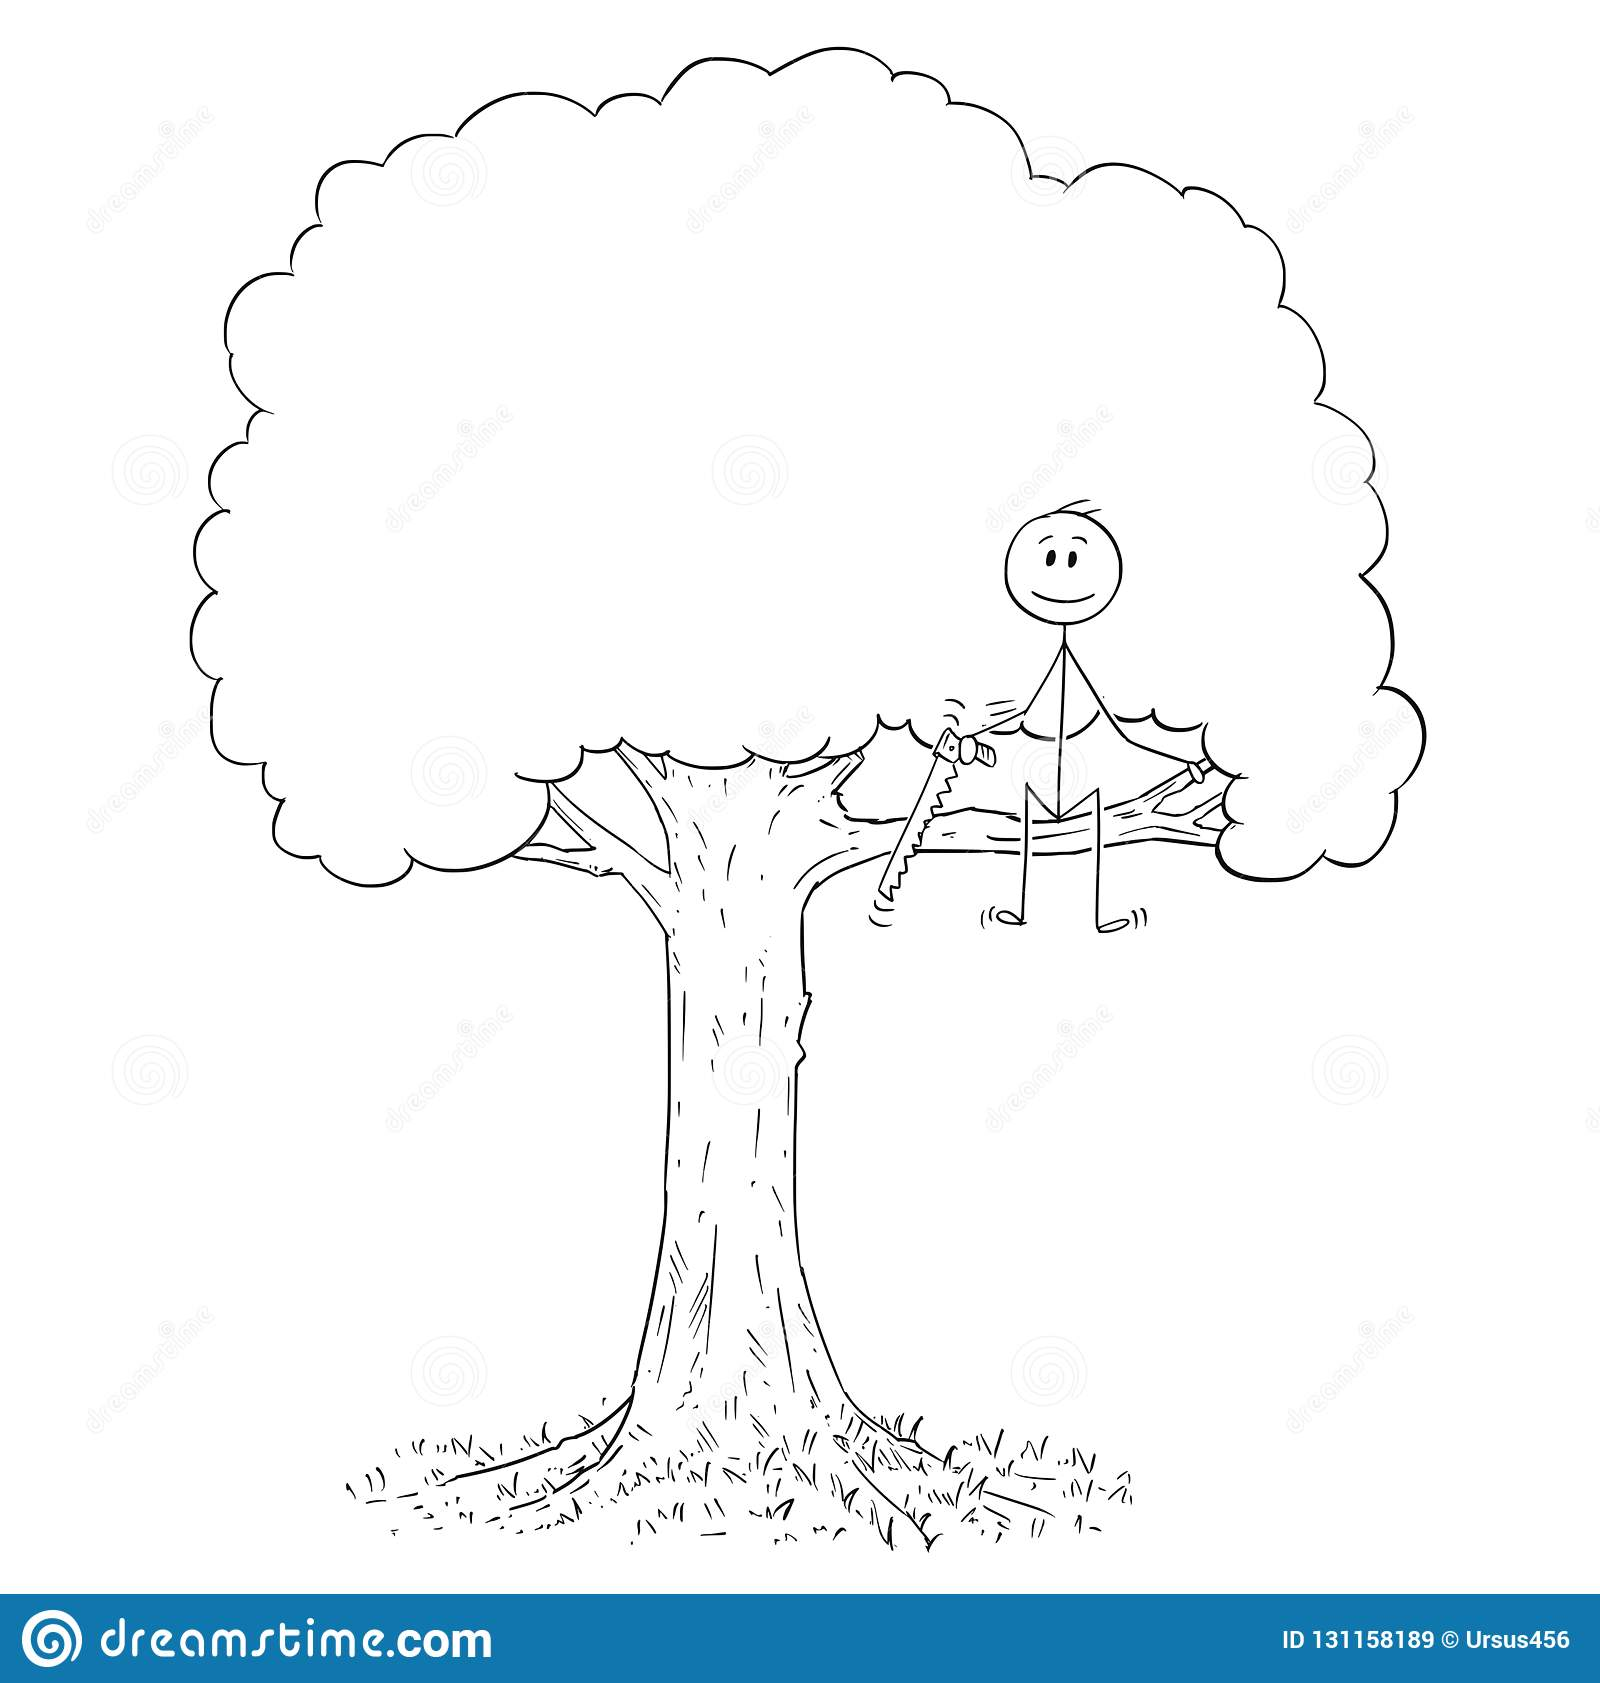 This is a picture of Gorgeous Stick Tree Drawing